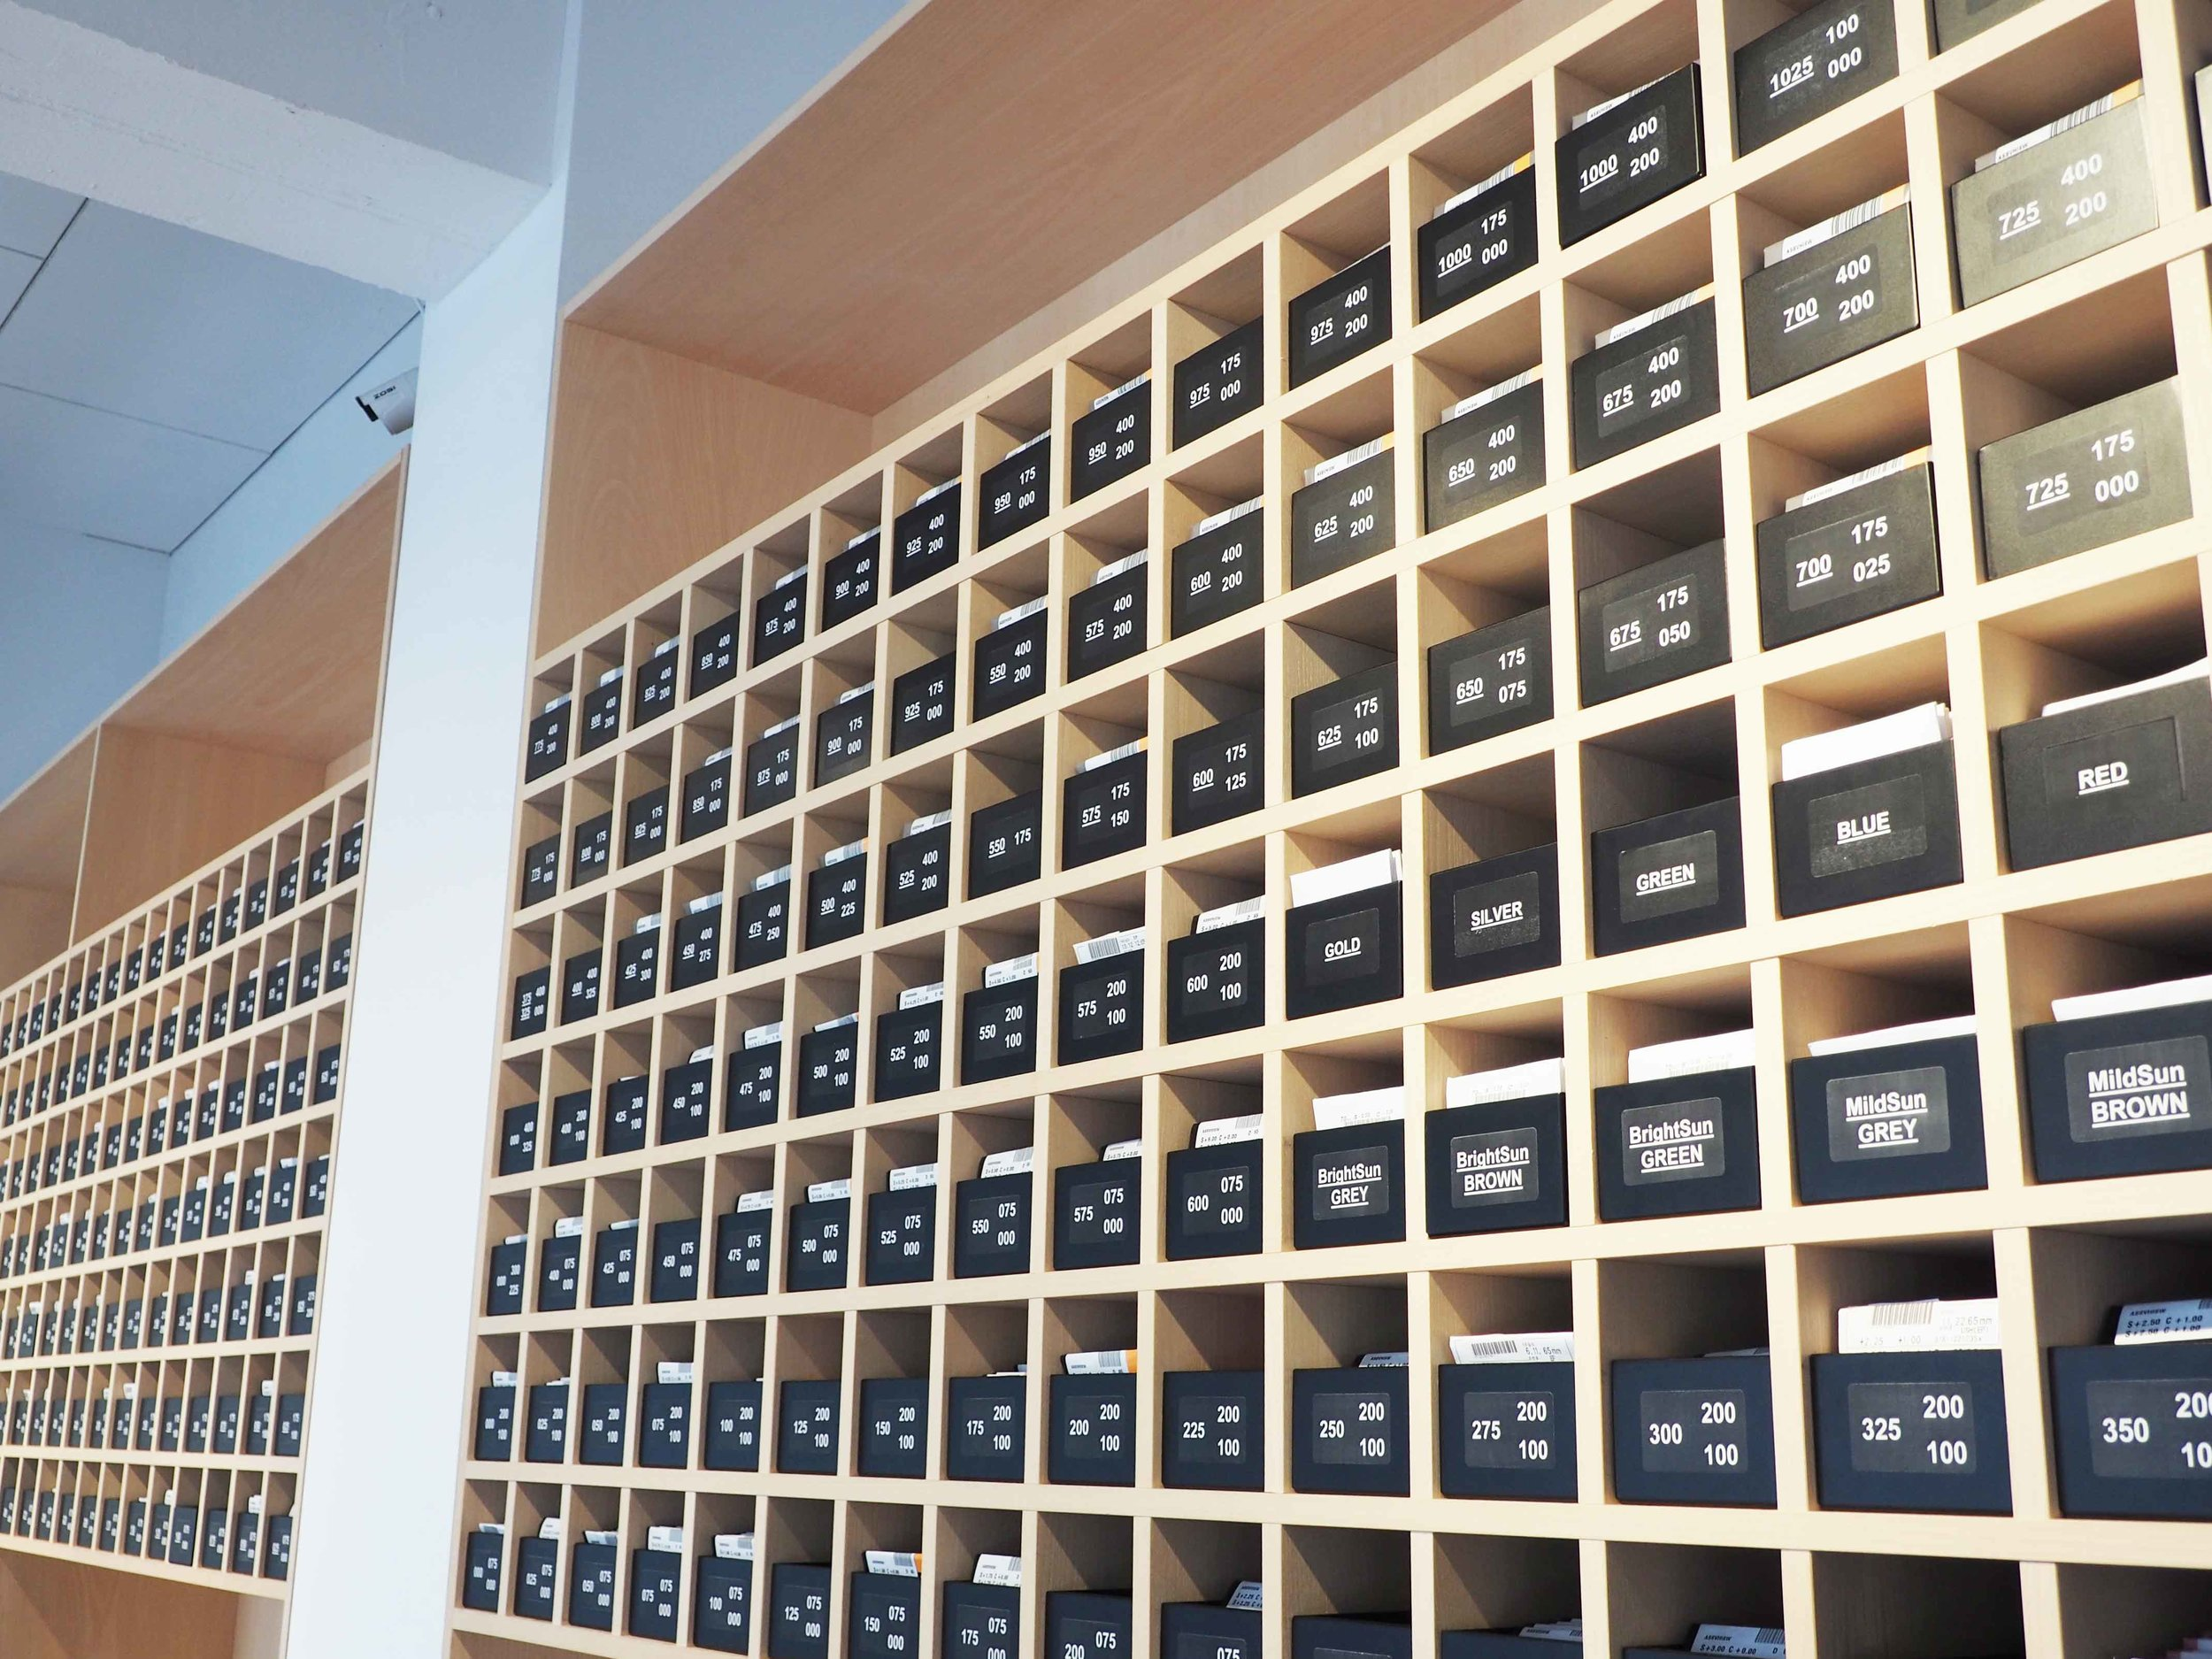 YUN's lens storage in the store